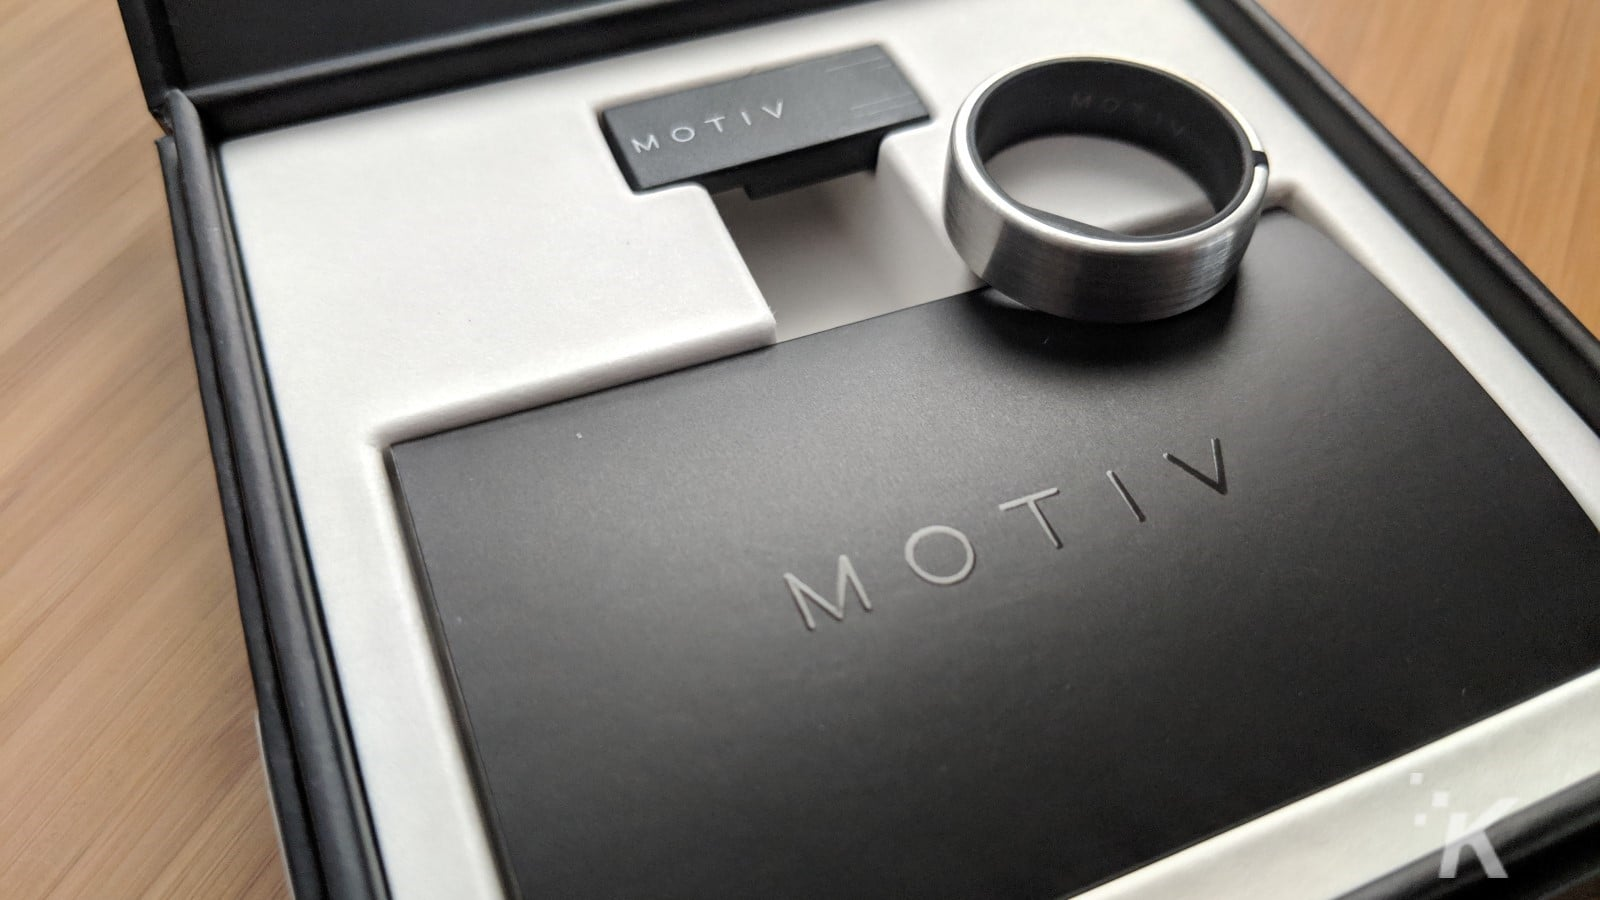 motiv fitness tracking ring on box